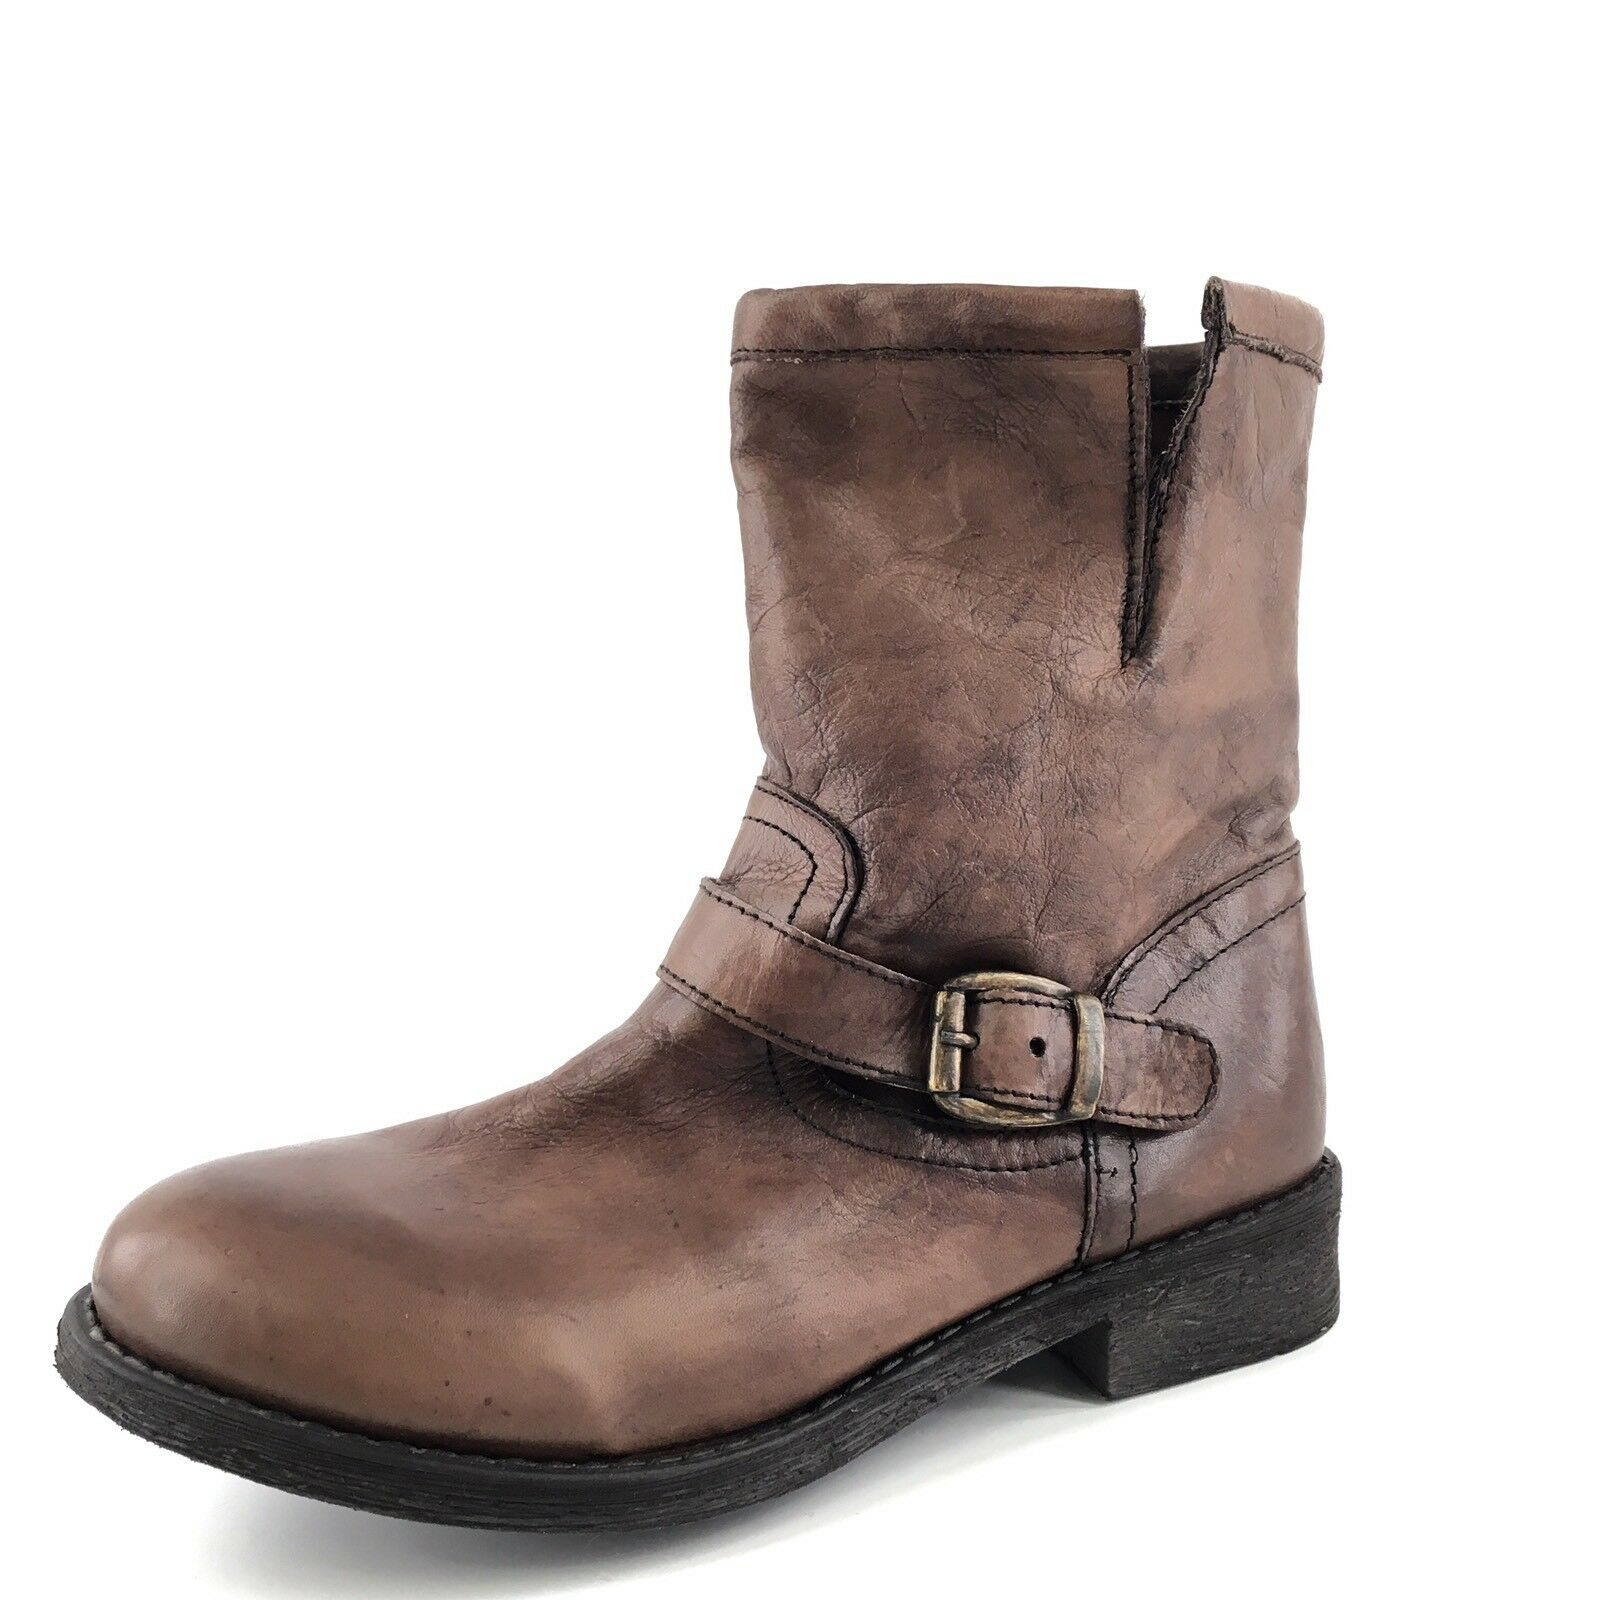 Zigisoho Tequila Brown Leather Short Ankle  Boots Women's Size 6.5 M*